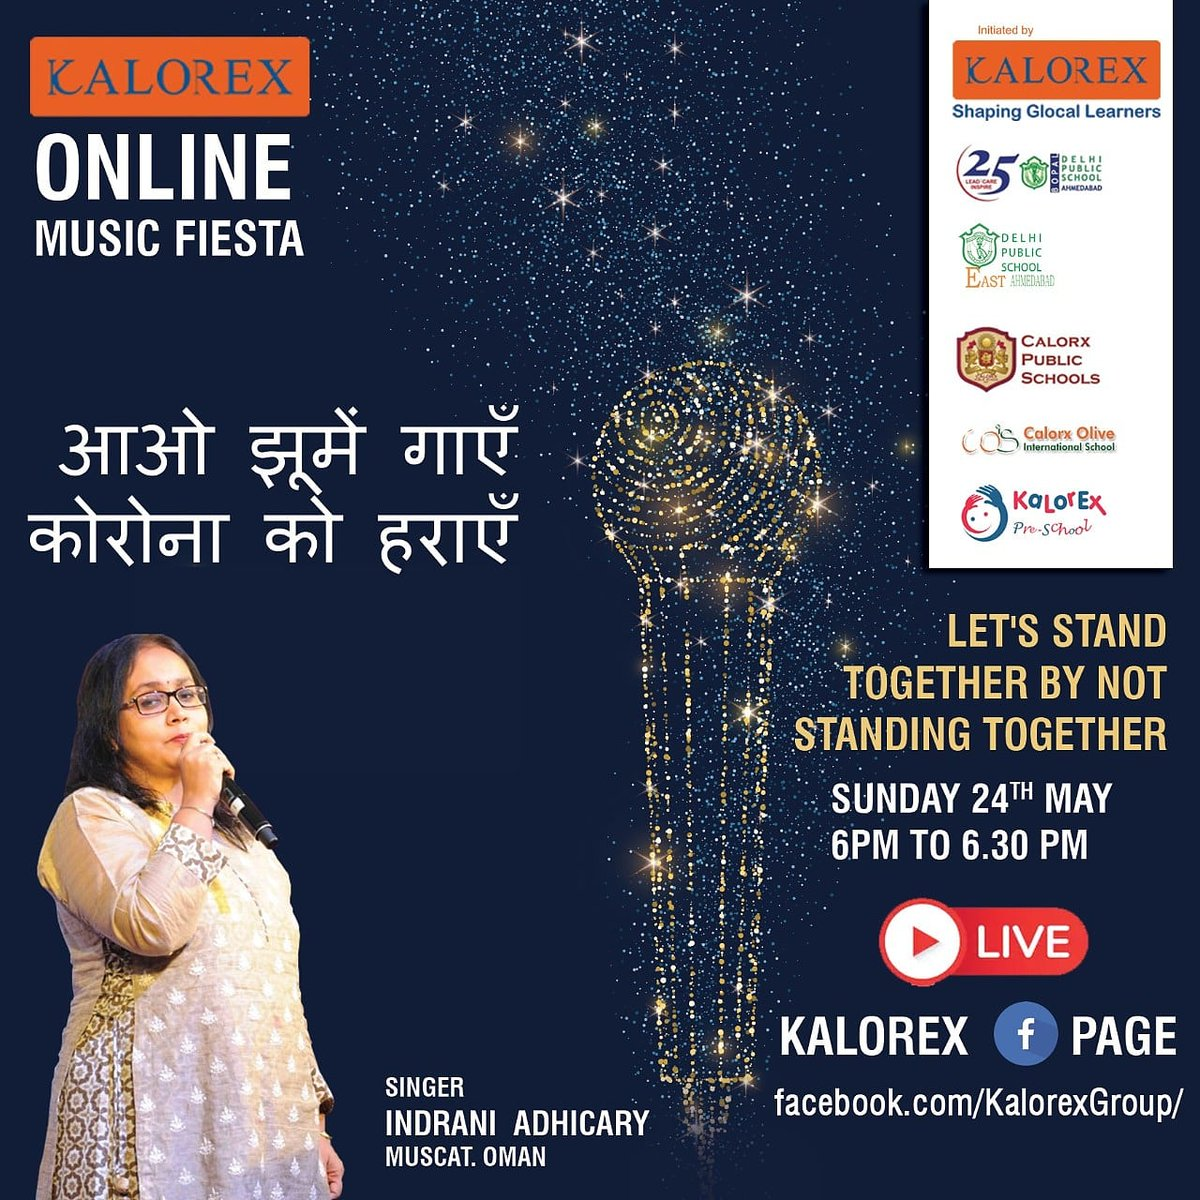 Kalorex Group is going live for Online Music Fiesta on Sunday 24th May at 6.00 PM to 6.30 PM. Let's Stand Together by Not Standing Together With  Indrani Adhicary  , only on Kalorex Group FB Page, Stay Tune, Stay Safe & Stay at Home.  #KOMF #Kalorex https://t.co/Y16xxc4xw0